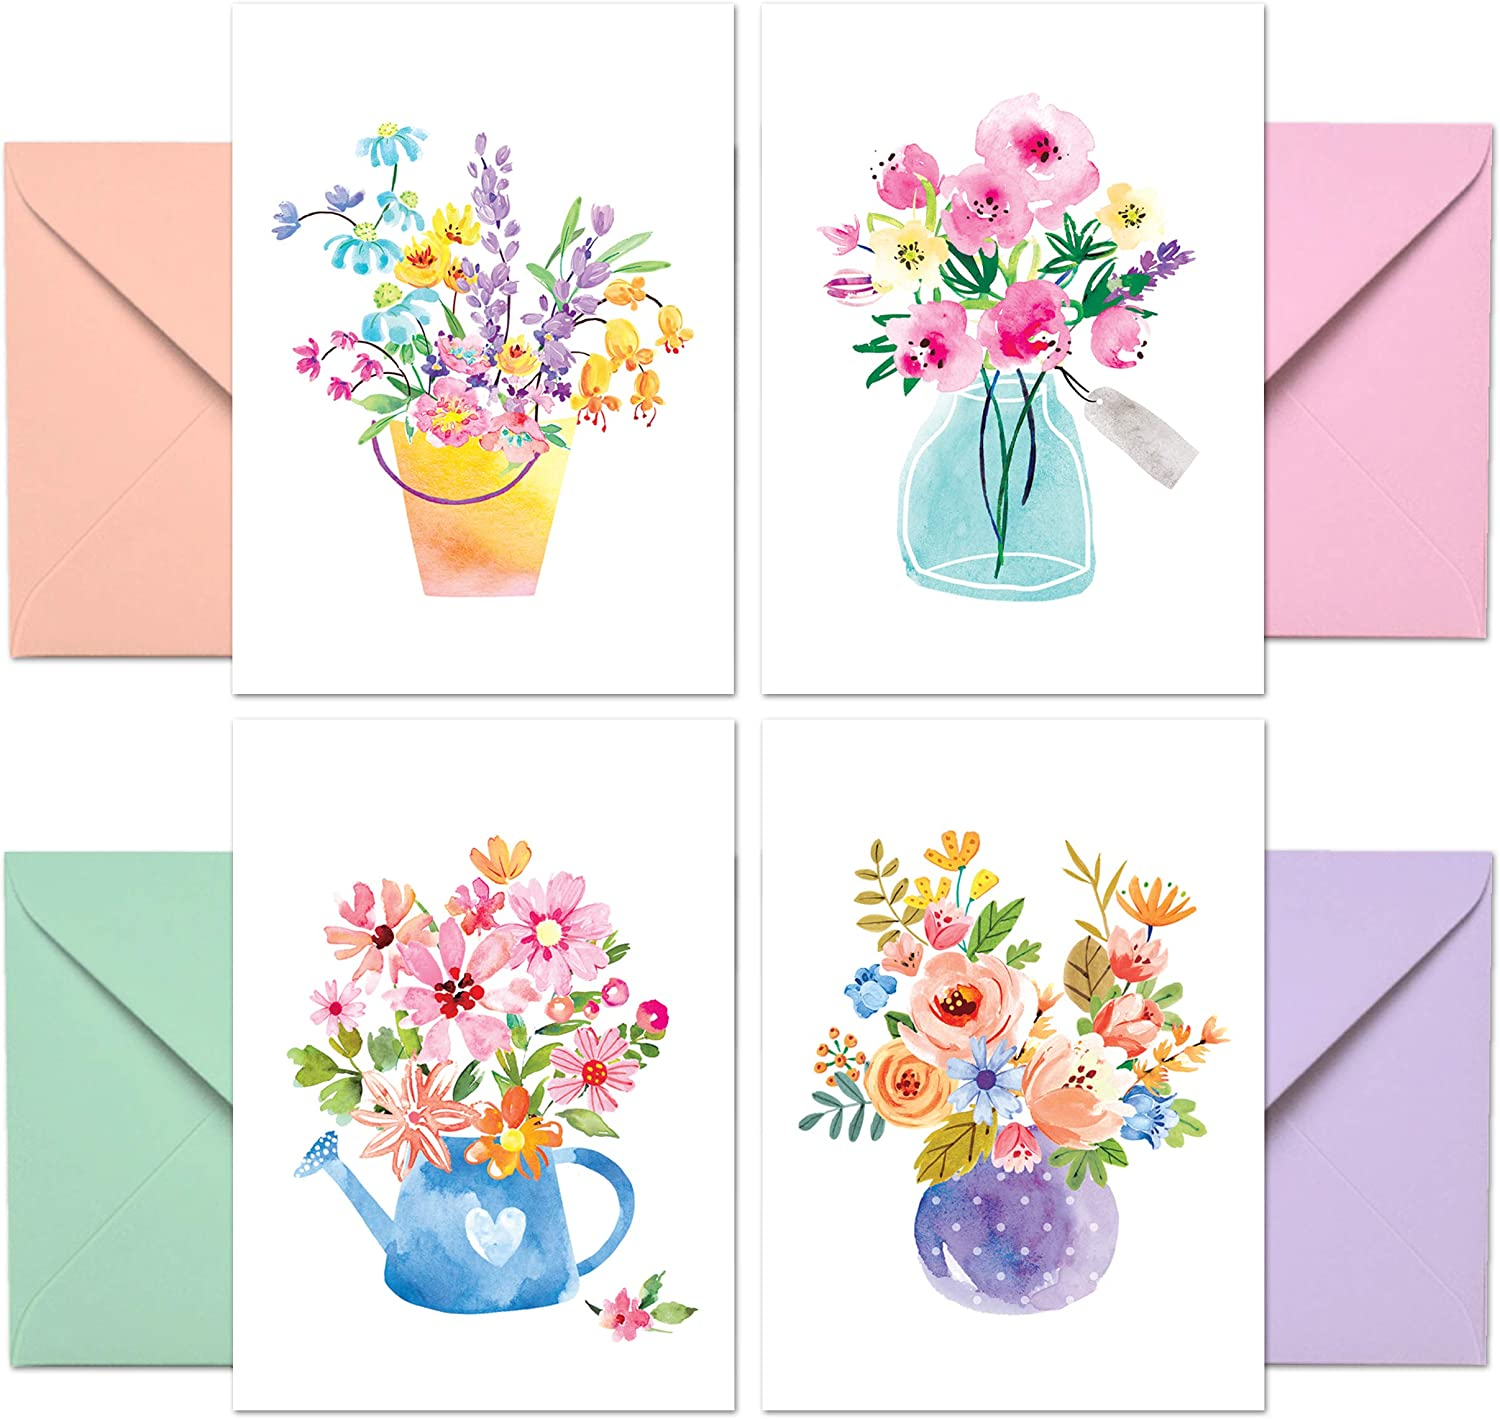 Blank Cards with Envelopes - 48 Floral Blank Note Cards with Envelopes – 4 Assorted Cards for All Occasions! Blank Notecards and Envelopes Stationary Set for Personalized Greeting Cards-4x5.5""